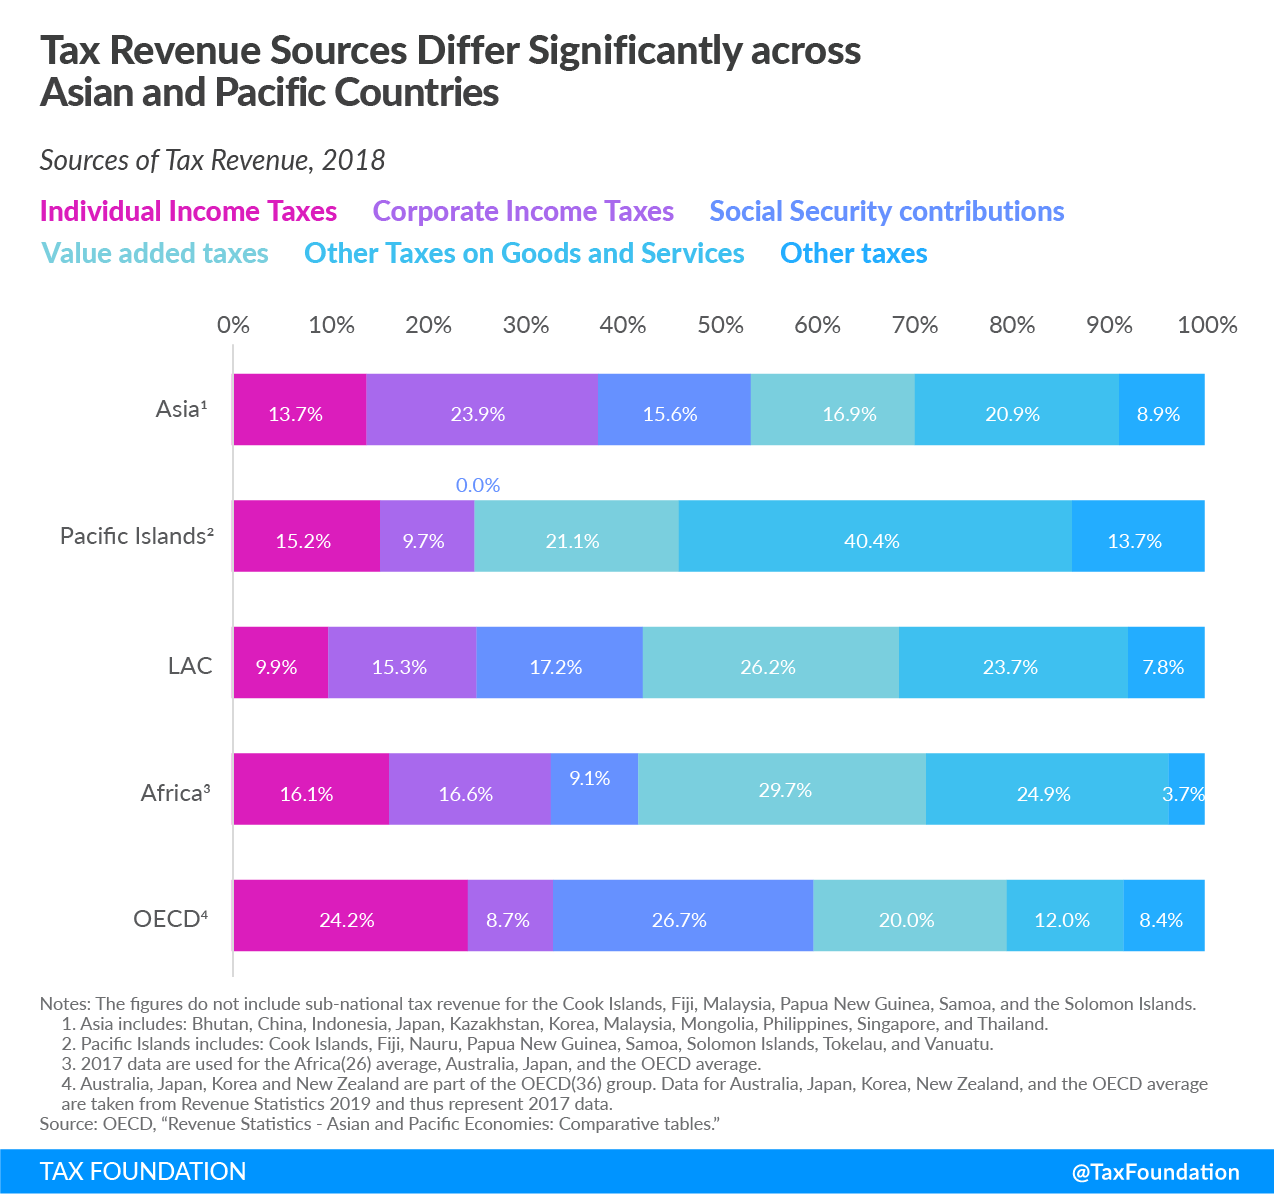 China tax system, China sources of tax revenue, Japan tax system, Japan sources of tax revenue, South Korea tax system, South Korea sources of tax revenue, Australia tax system, Australia sources of tax revenue, New Zealand tax system, New Zealand sources of tax revenue